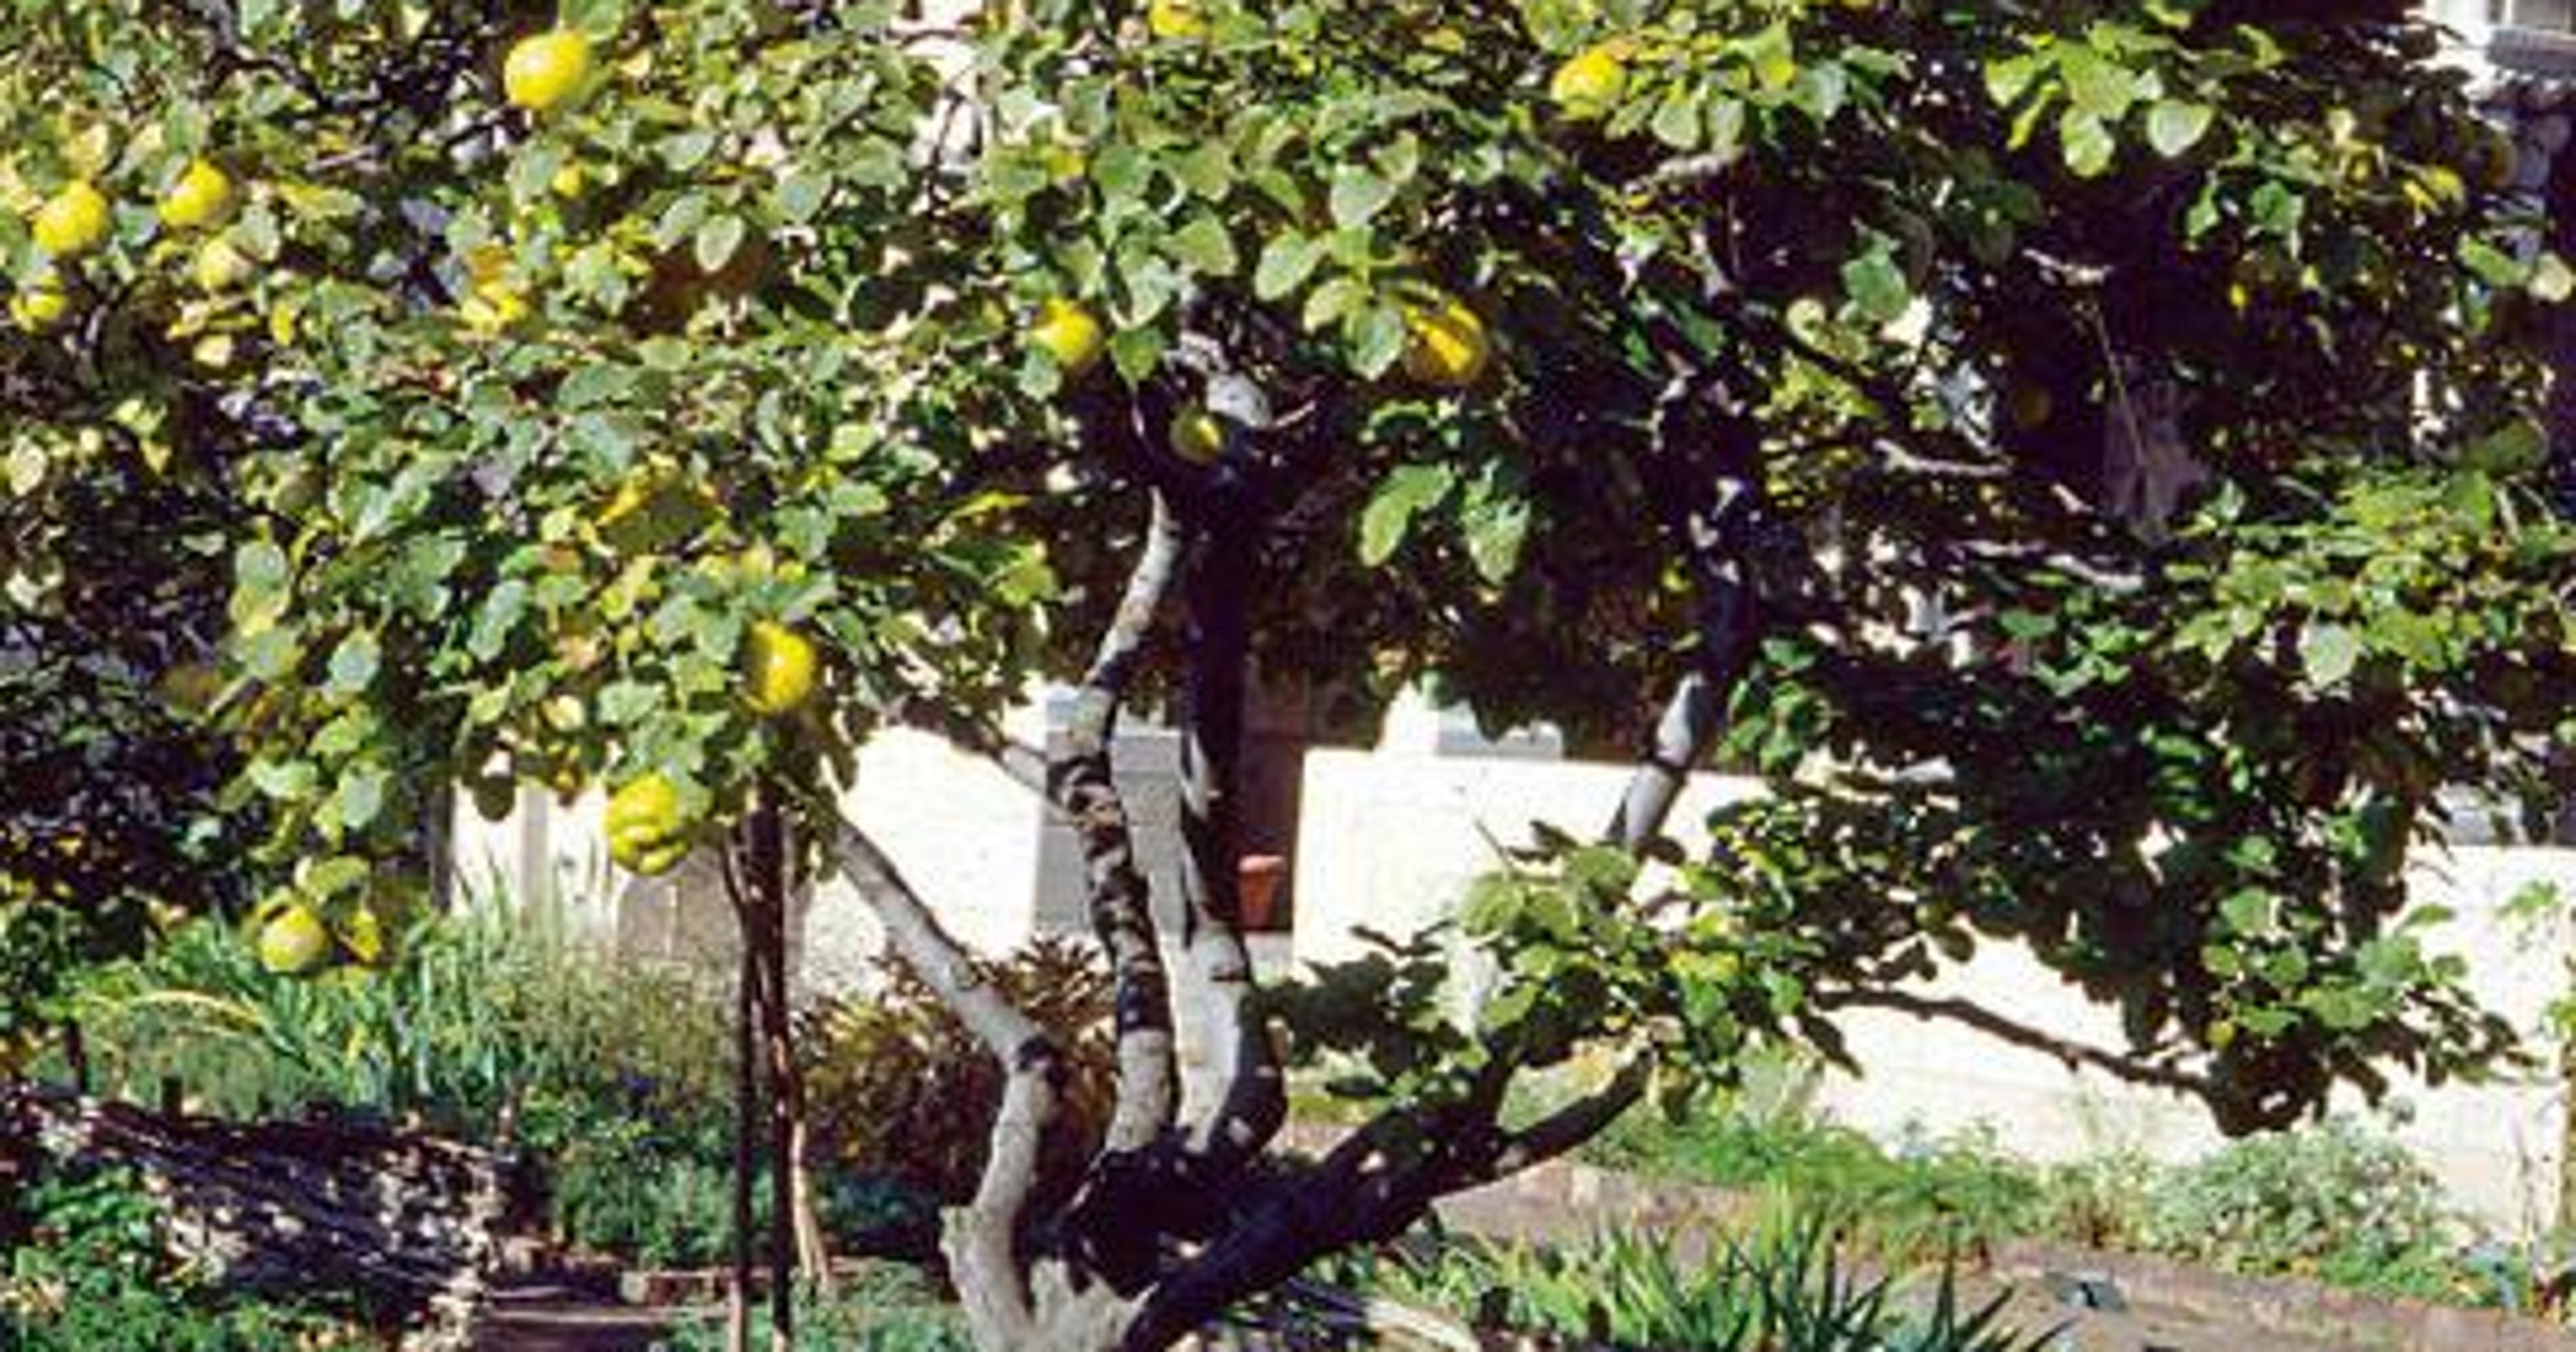 Quince Grow And Taste The Forbidden Fruit